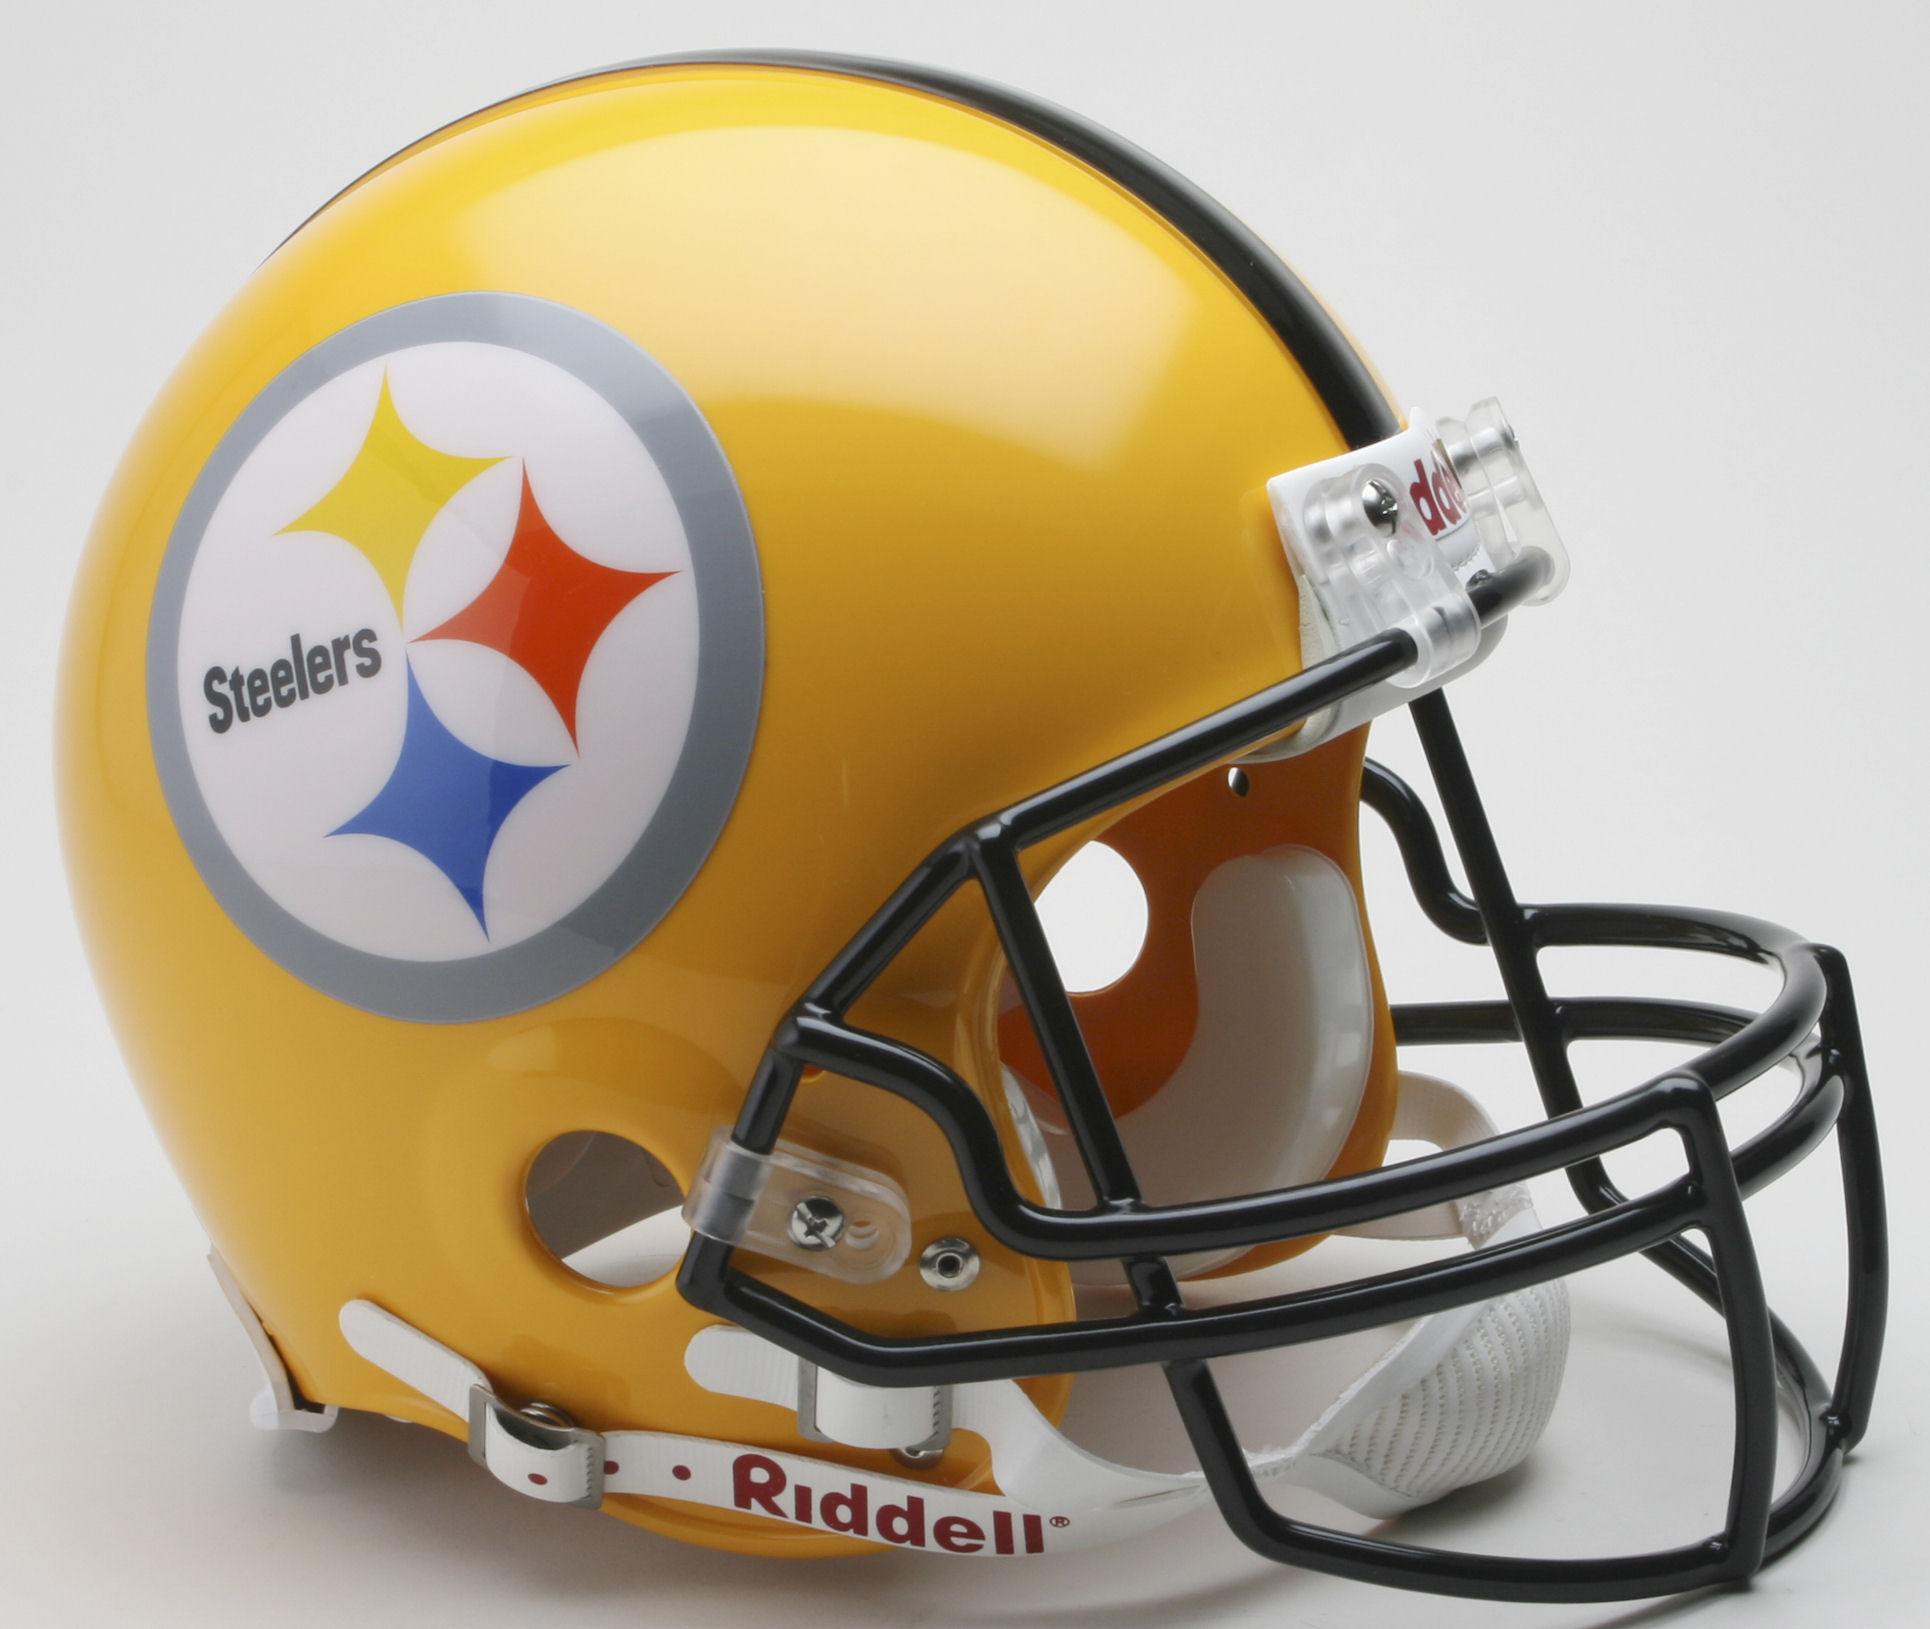 Pittsburgh Steelers 1962 Football Helmet 75th Anniversary